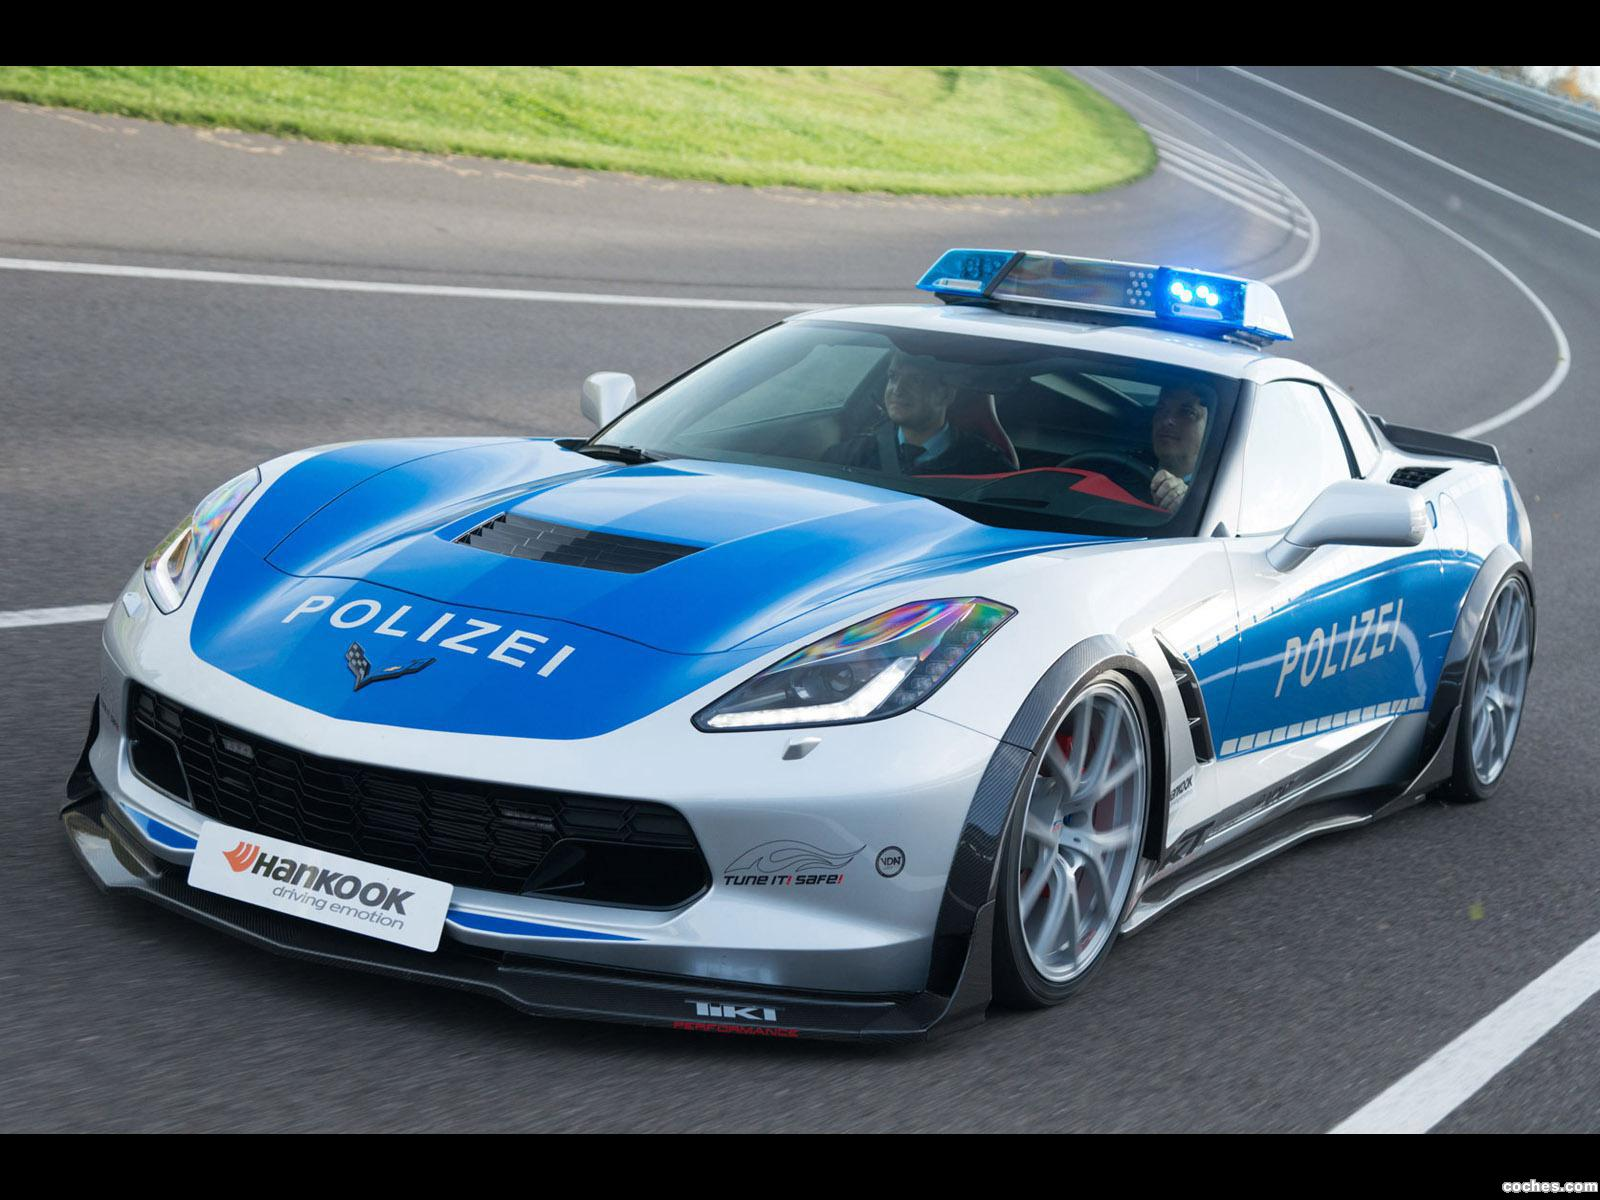 Foto 1 de Chevrolet Corvette C7 Stingray Coupe Polizei Safe Concept 2015